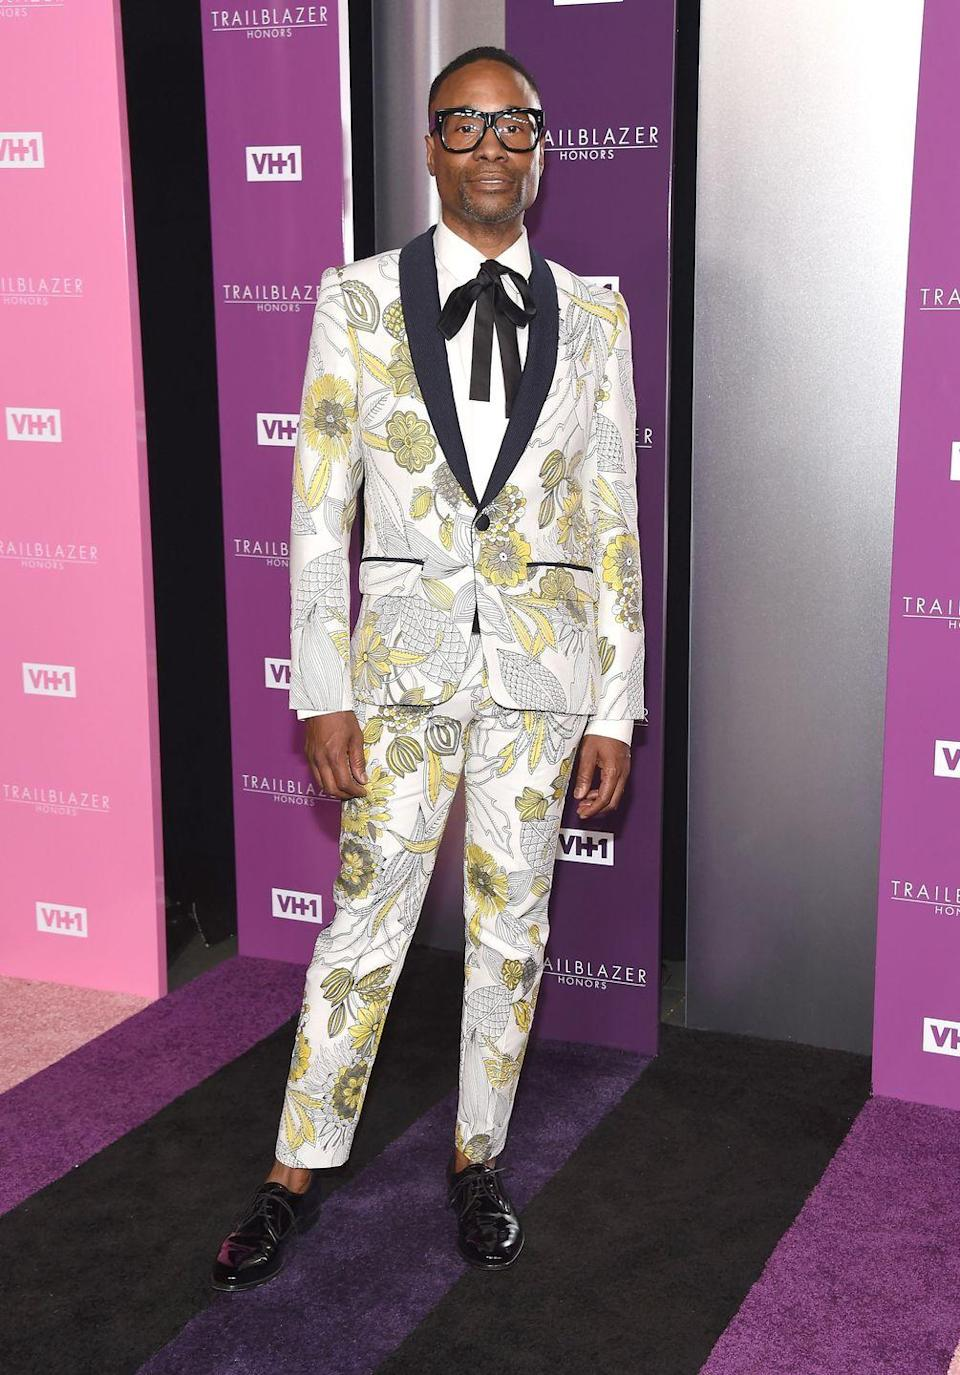 <p>Porter at the VH 1 Trailblazer Honors in a floral-printed suit and elongated bow tie. </p>